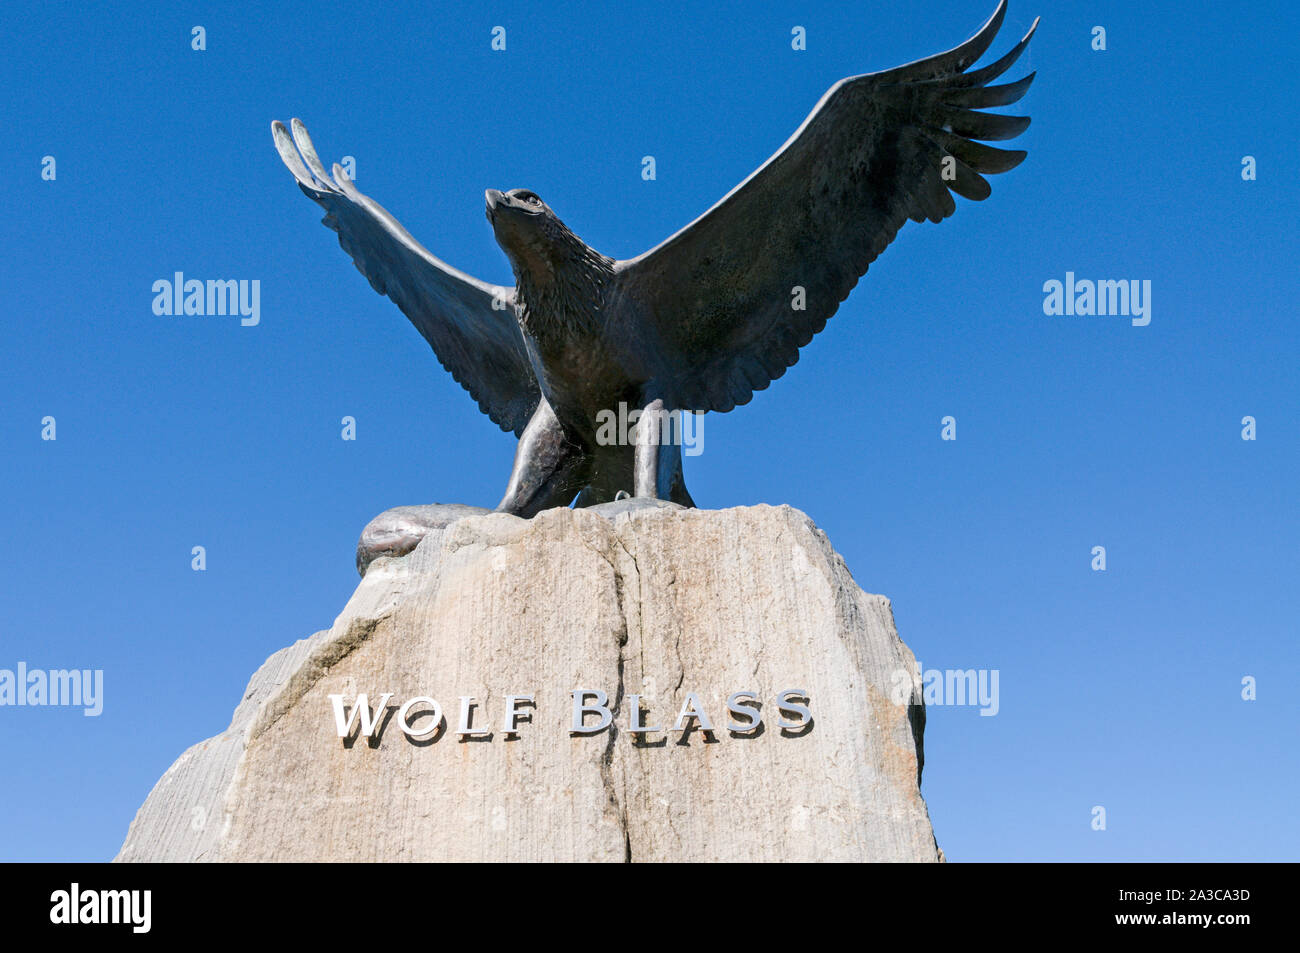 A statue of an eagle of the Wolf Blass trademark, situated at the Wolf Blass main winery visitor's centre in the Barossa Valley wine region in South A Stock Photo